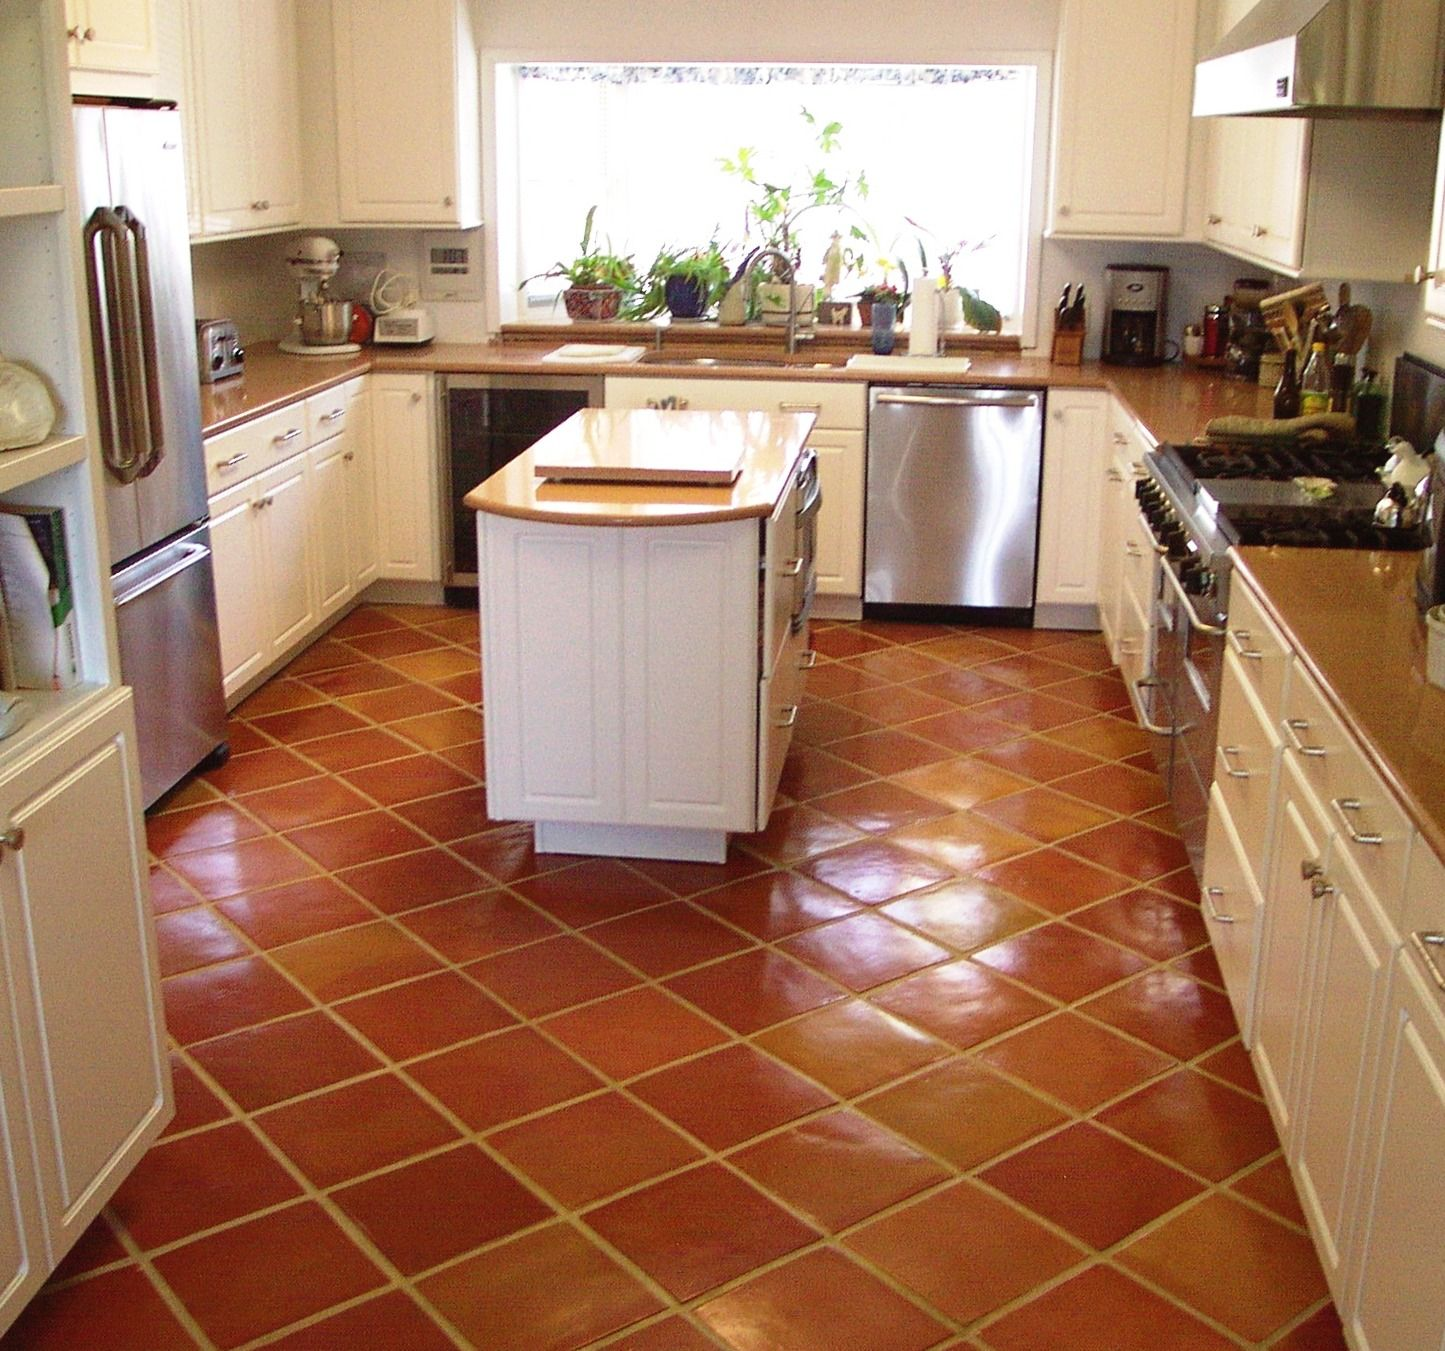 Tiles In Kitchen Floor Home Decorating Ideas The Spanish Style Stove The Floor And